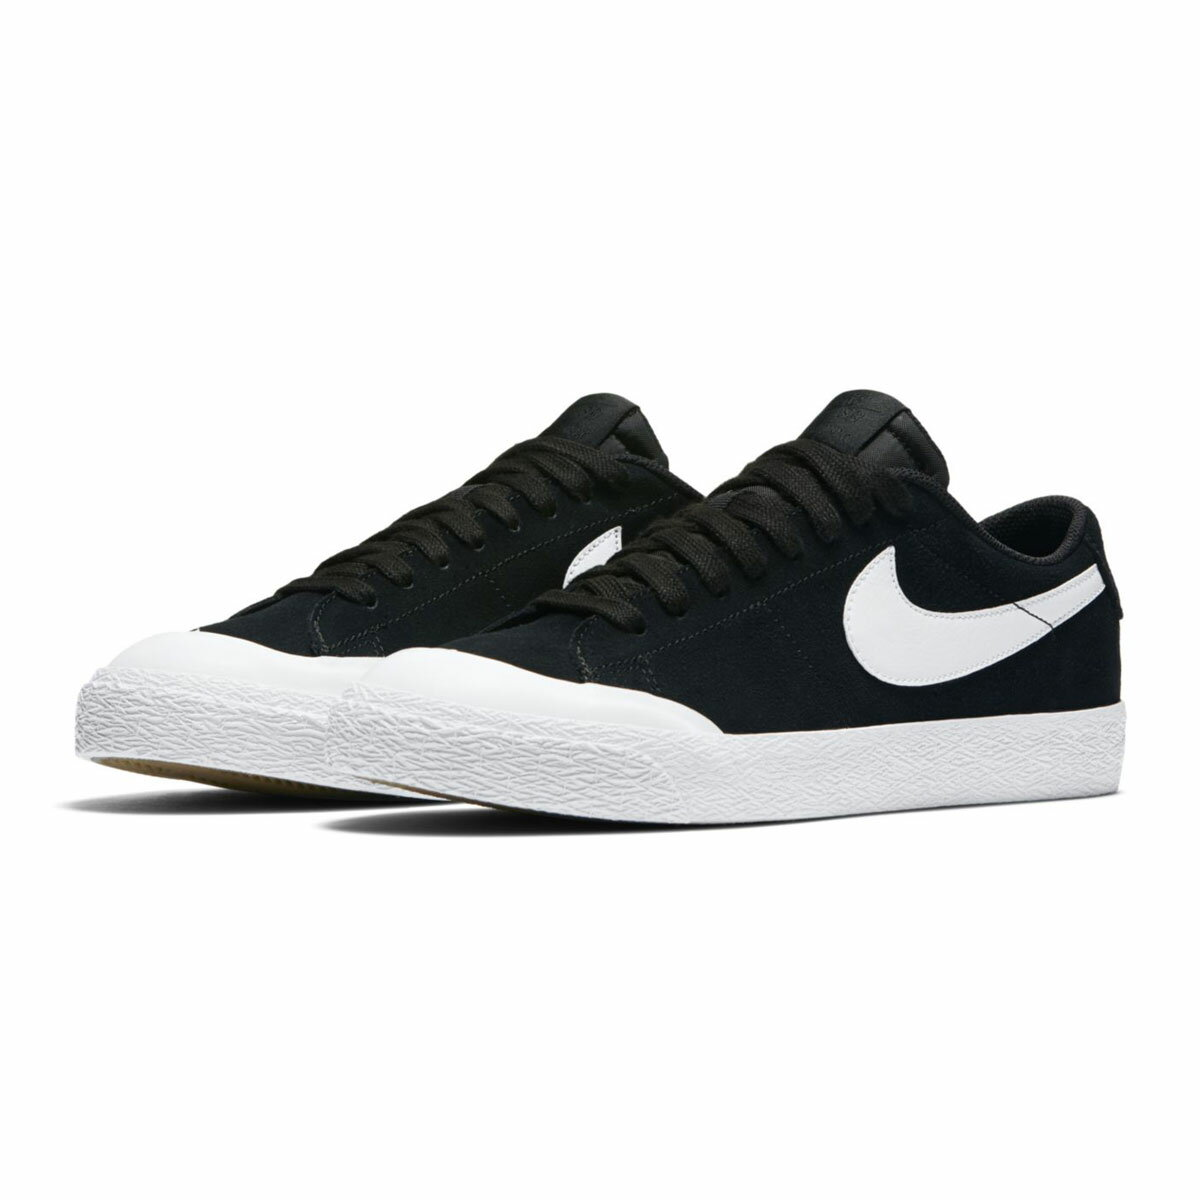 NIKE SB BLAZER ZOOM LOW XT (ナイキ ナイキSB ブレーザー ズーム ロー XT) BLACK/WHITE-GUM LIGHT BROWN-WHITE【メンズ スニーカー】 CRYOVR